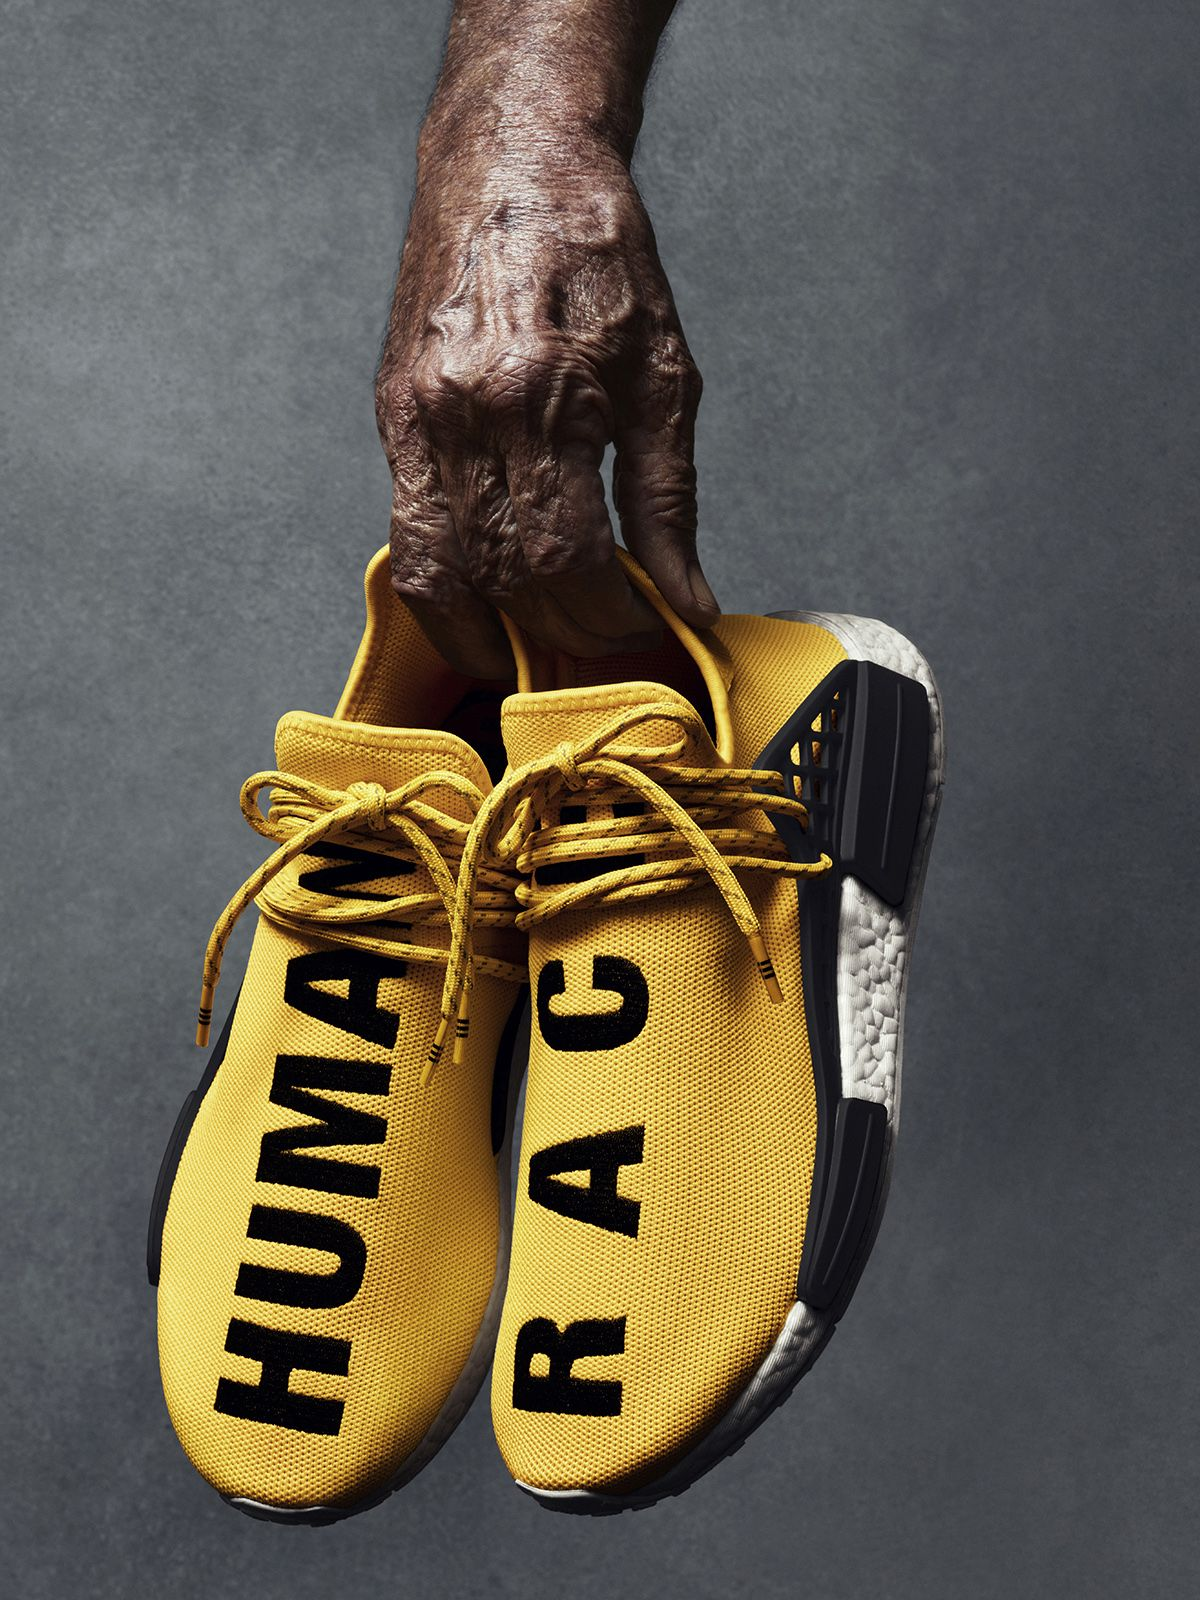 Buy Now & Priority Shipping UA NMD PW Human Race Yellow